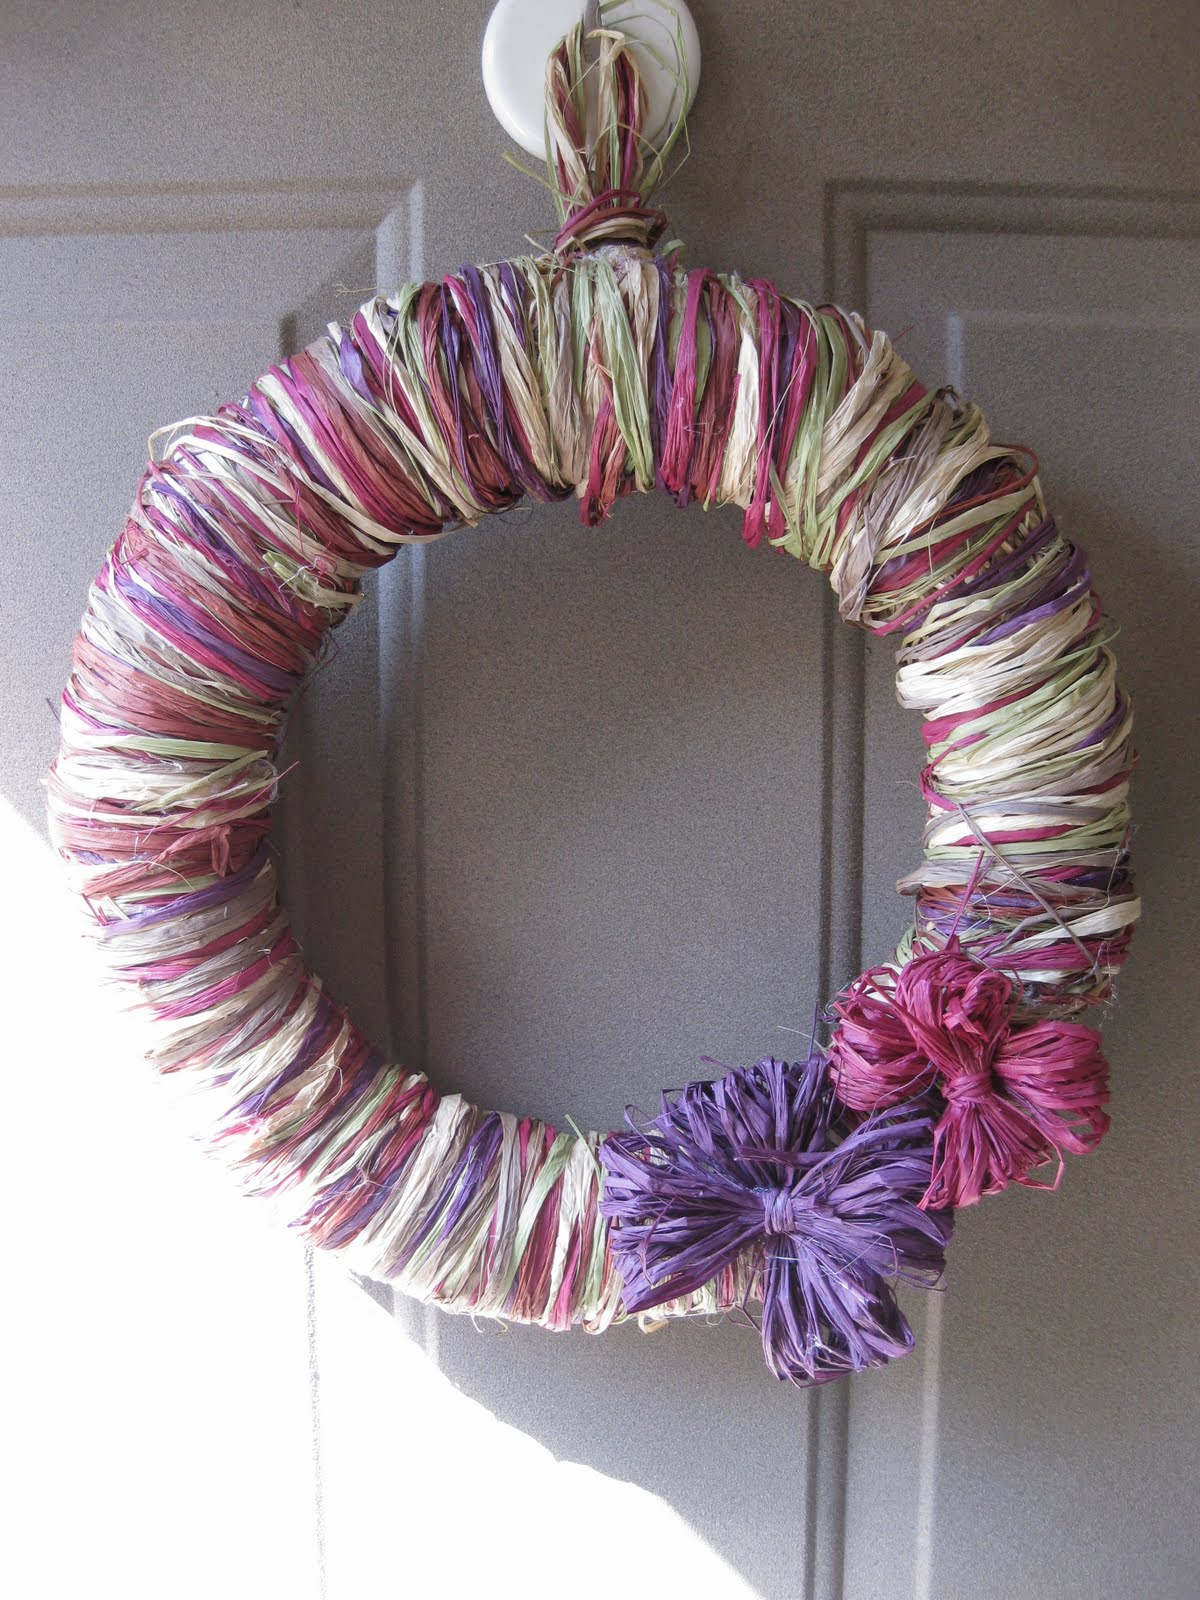 Decorating With Raffia Remodelaholic Diy Raffia Wreath Tutorial Holiday Decorating